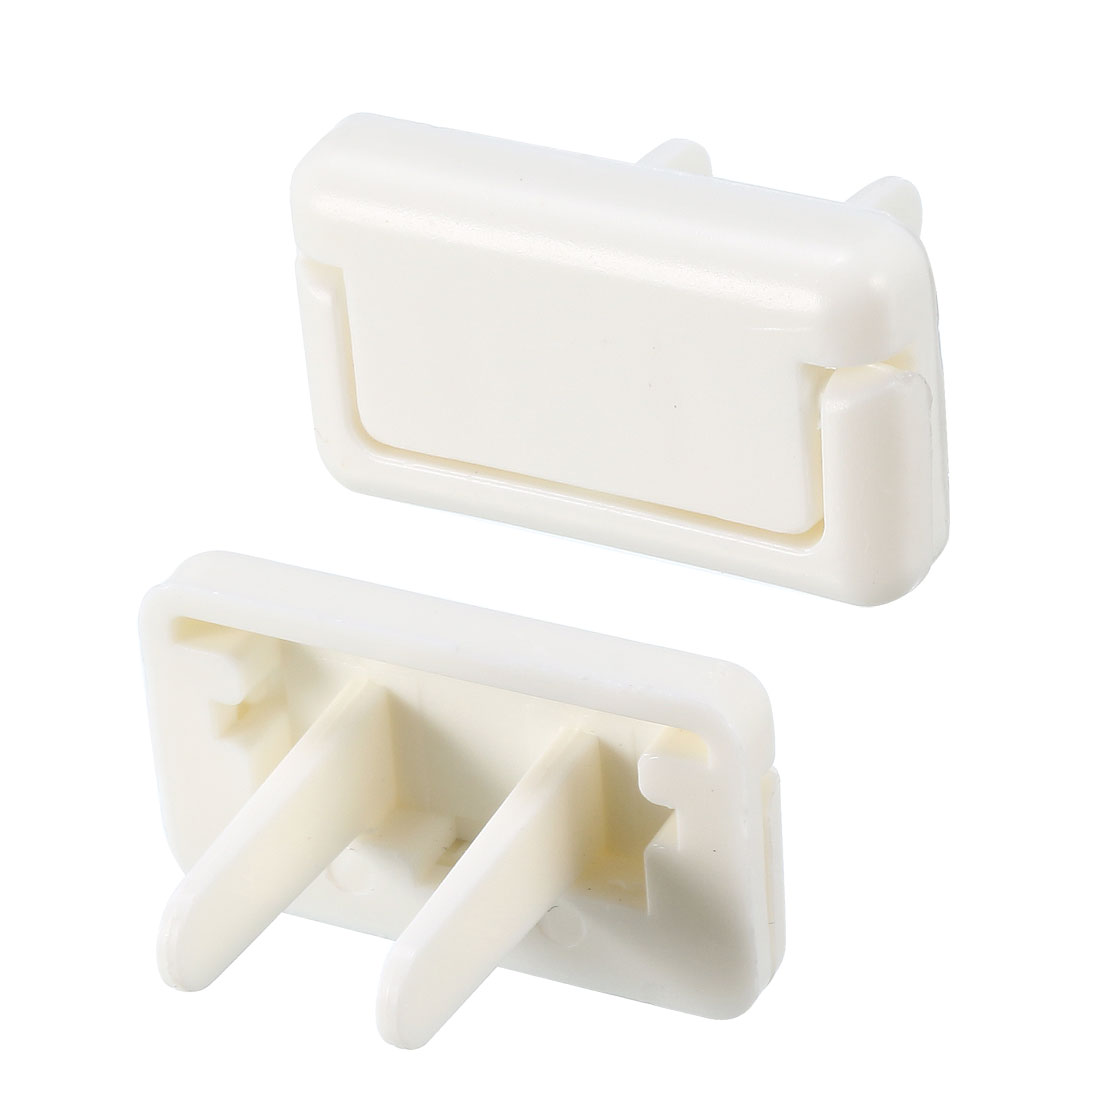 US Stand Power Socket Covers Durable Electrical Protector Safety Caps 30 Pcs